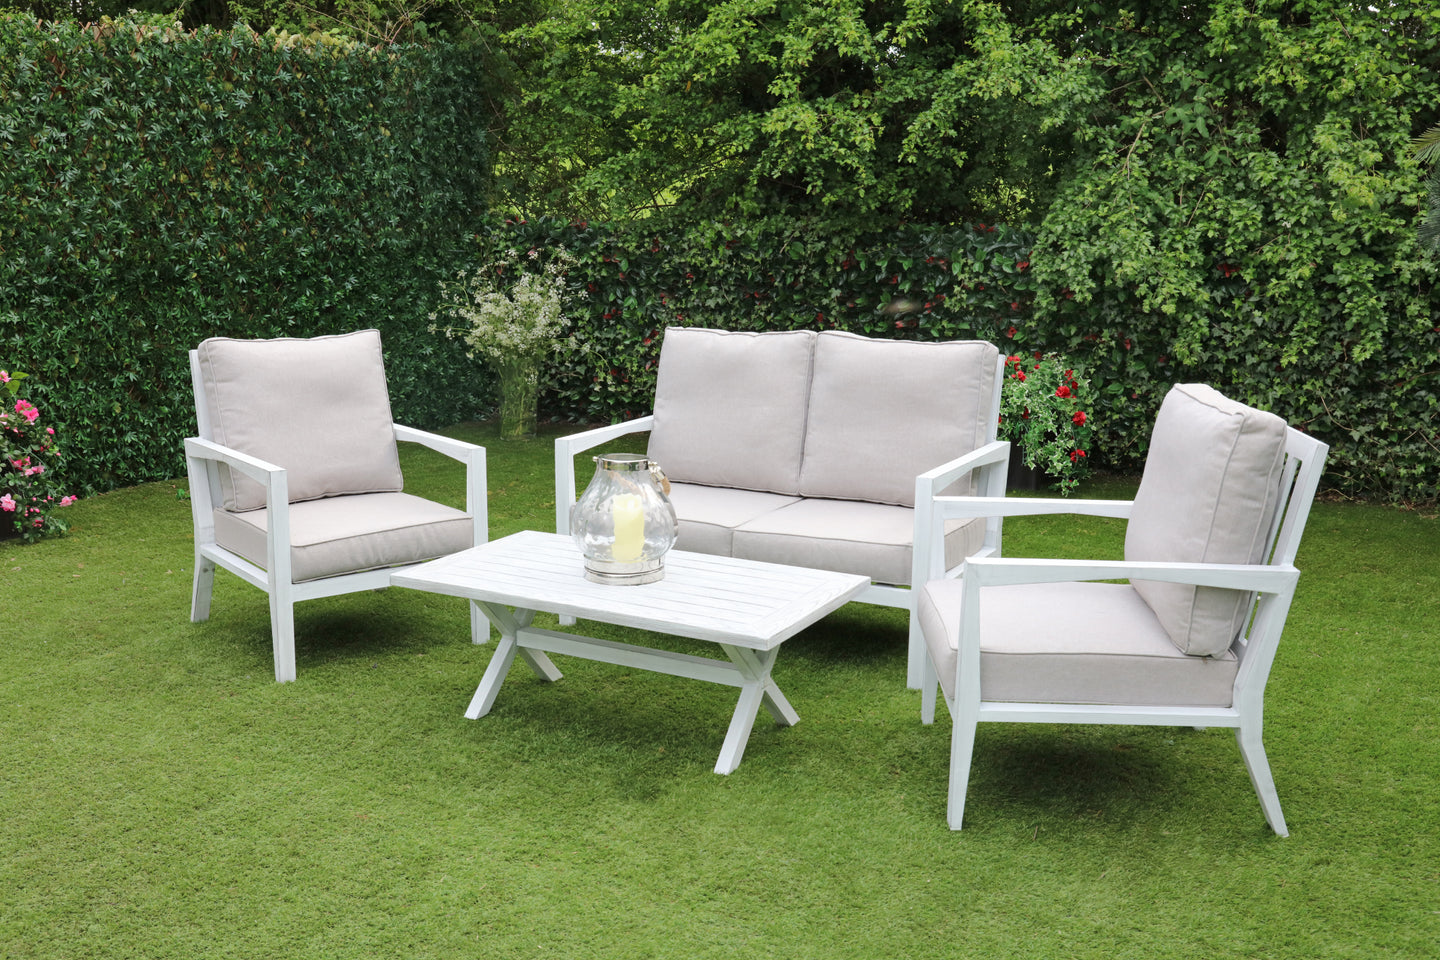 The Marseille Outdoor Aluminium Coffee Garden Set